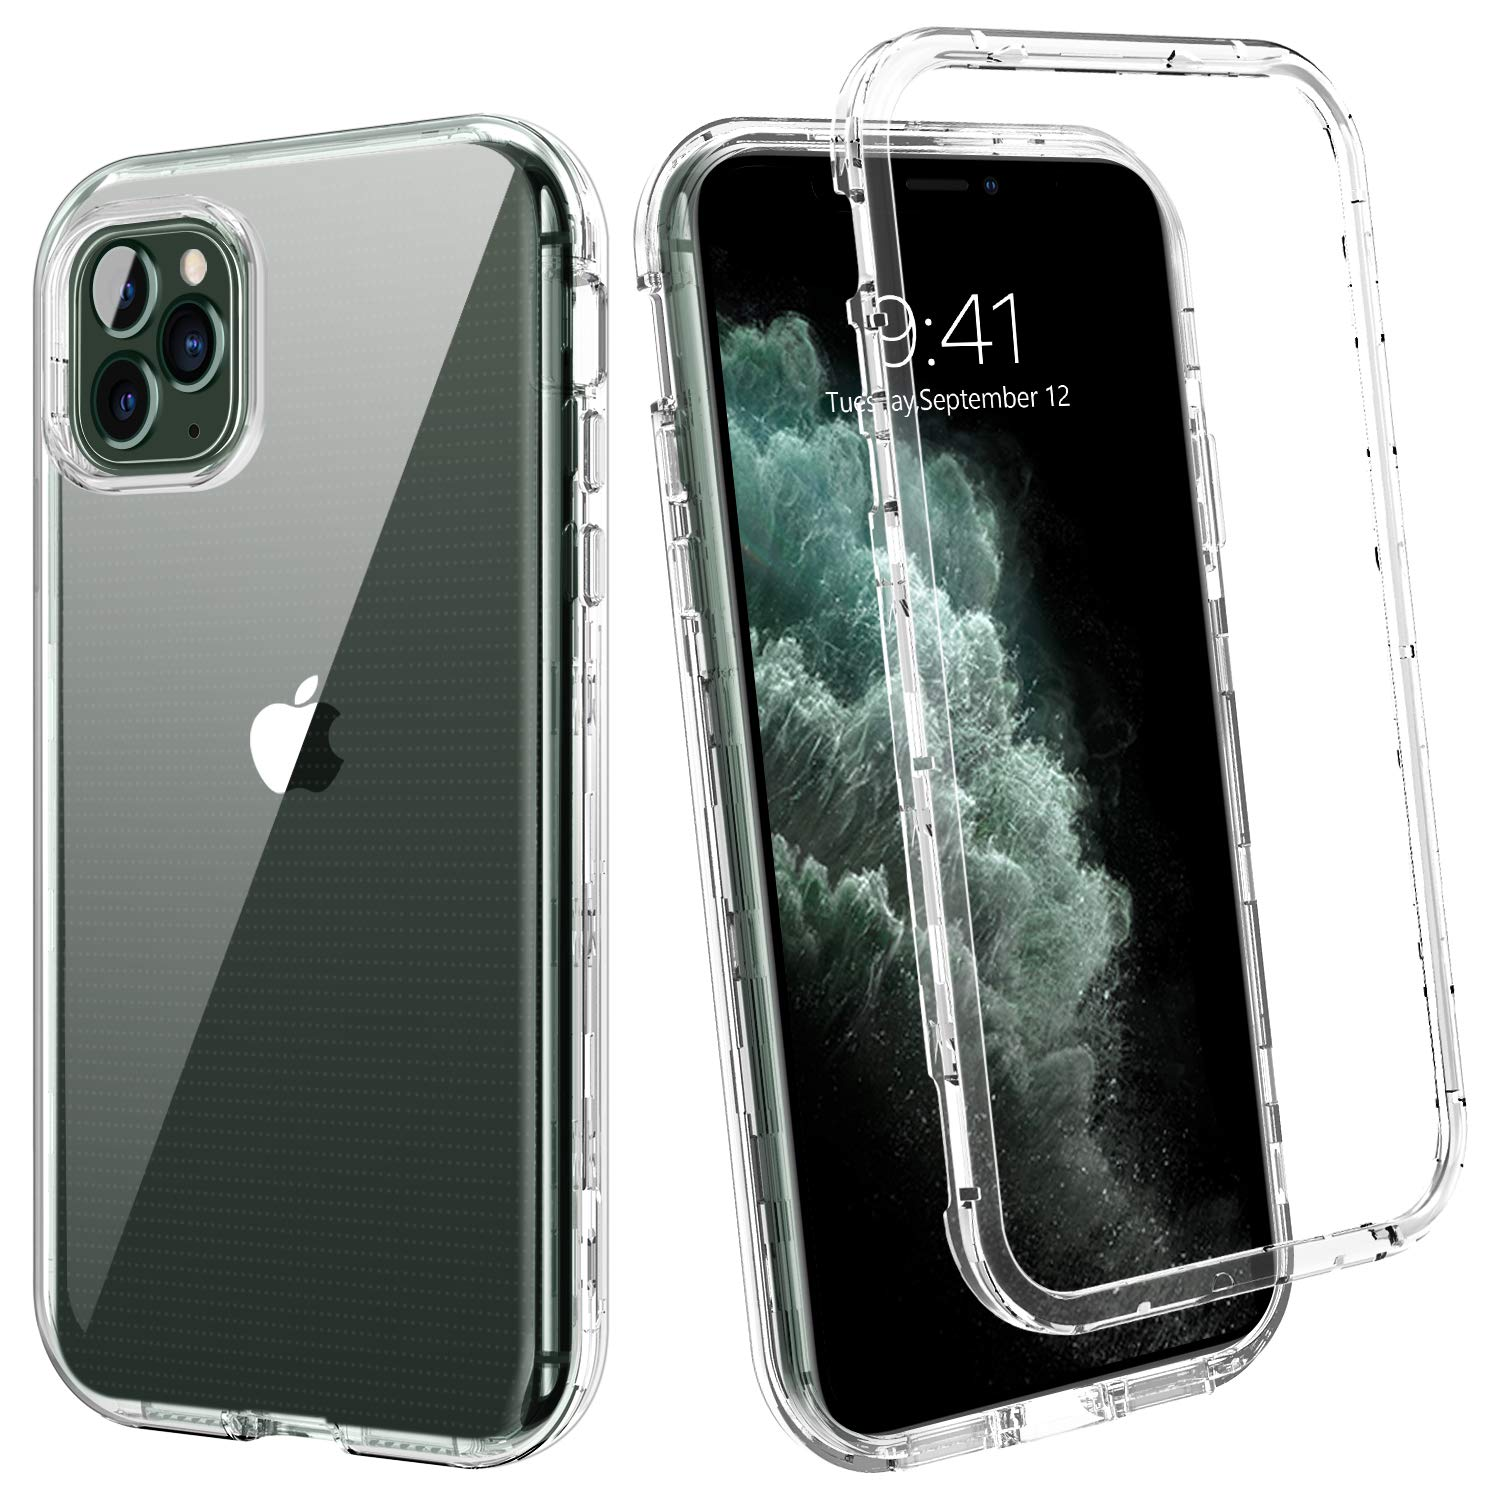 YINLAI iPhone 11 Pro Case 2019 Crystal Clear 3 in 1 Shockproof Drop Protection Heavy Duty Hybrid Hard PC Cover Bumper Full Body Protective Cases for iPhone 11 Pro(5.8 inch),Transpant